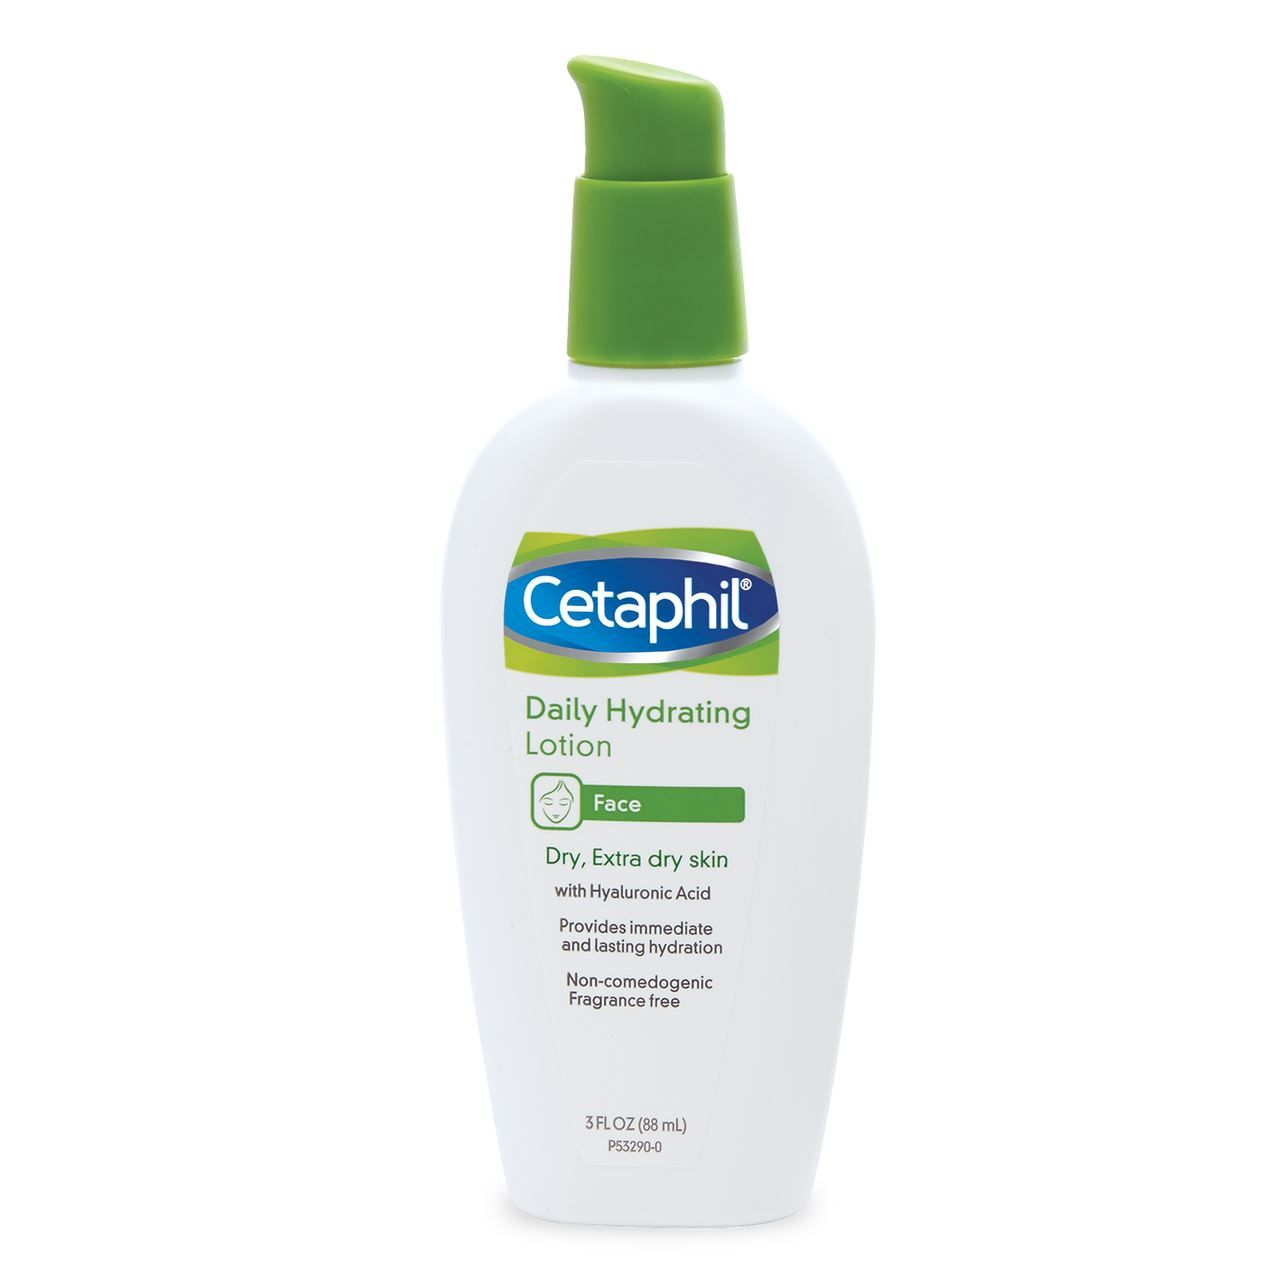 Cetaphil Daily Hydrating Lotion With Hyaluronic Acid Reviews Photos Ingredients Makeupalley